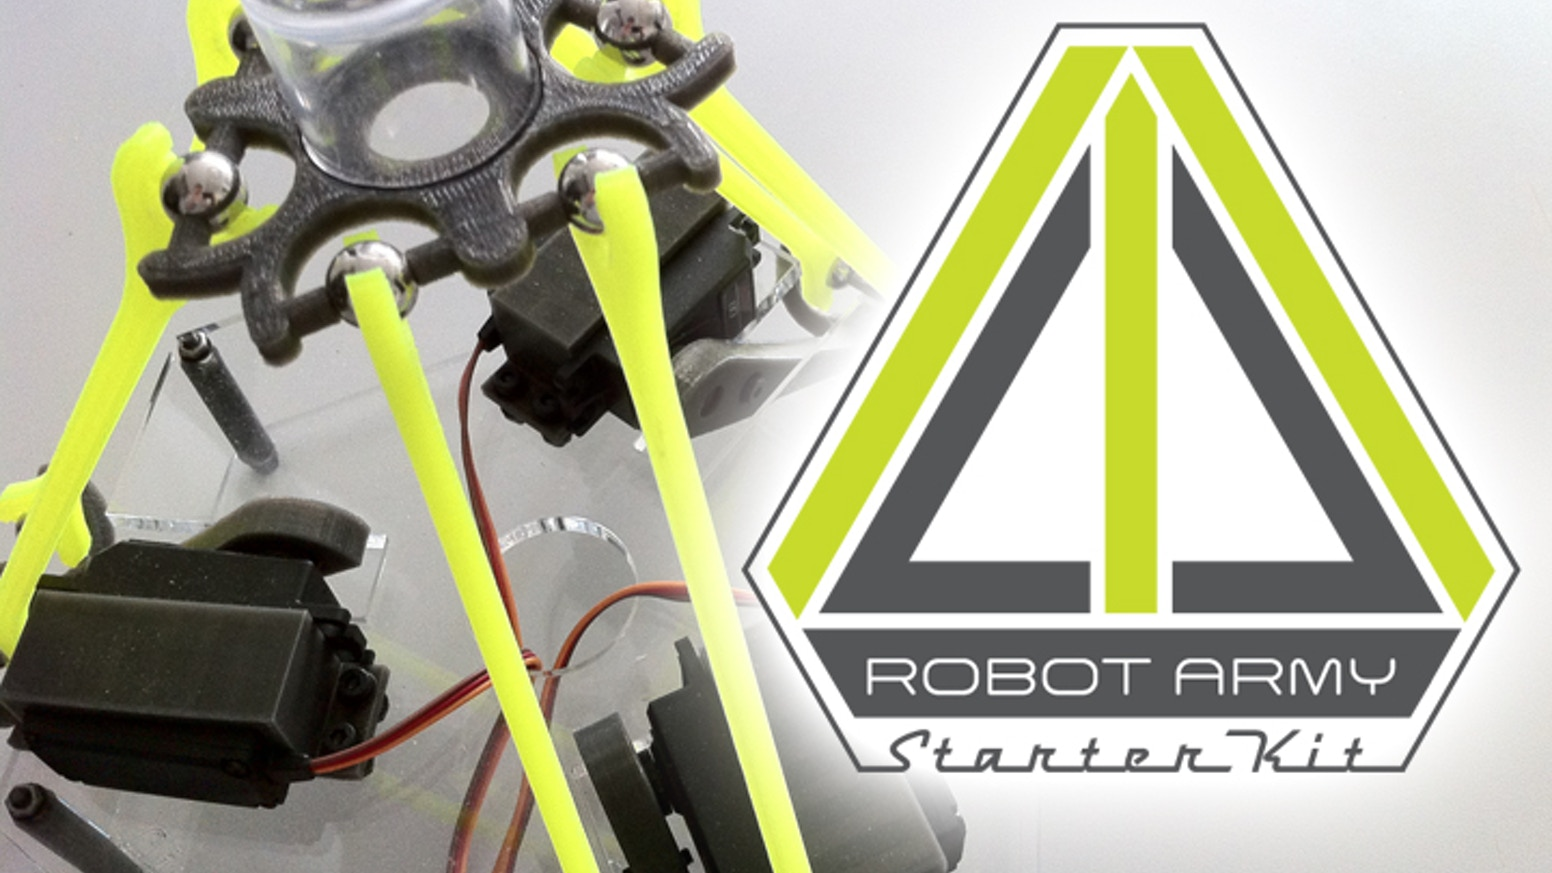 Robot army starter kit by robot army llc kickstarter a do it yourself delta robot kit thats fun to build sharp to solutioingenieria Image collections